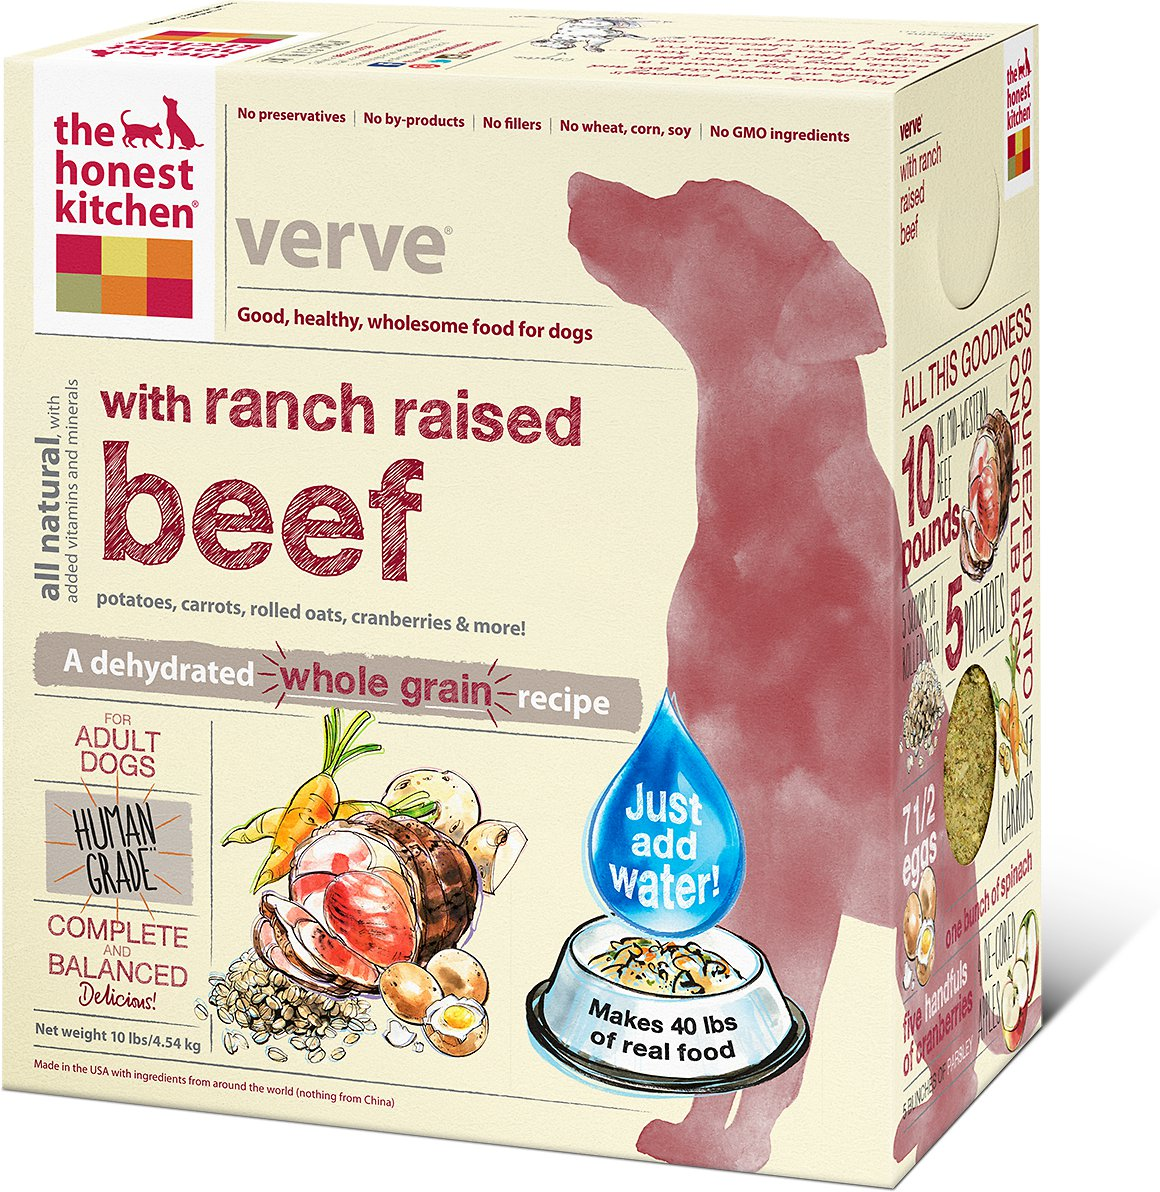 The Honest Kitchen Verve Dehydrated Dog Food 10lbs